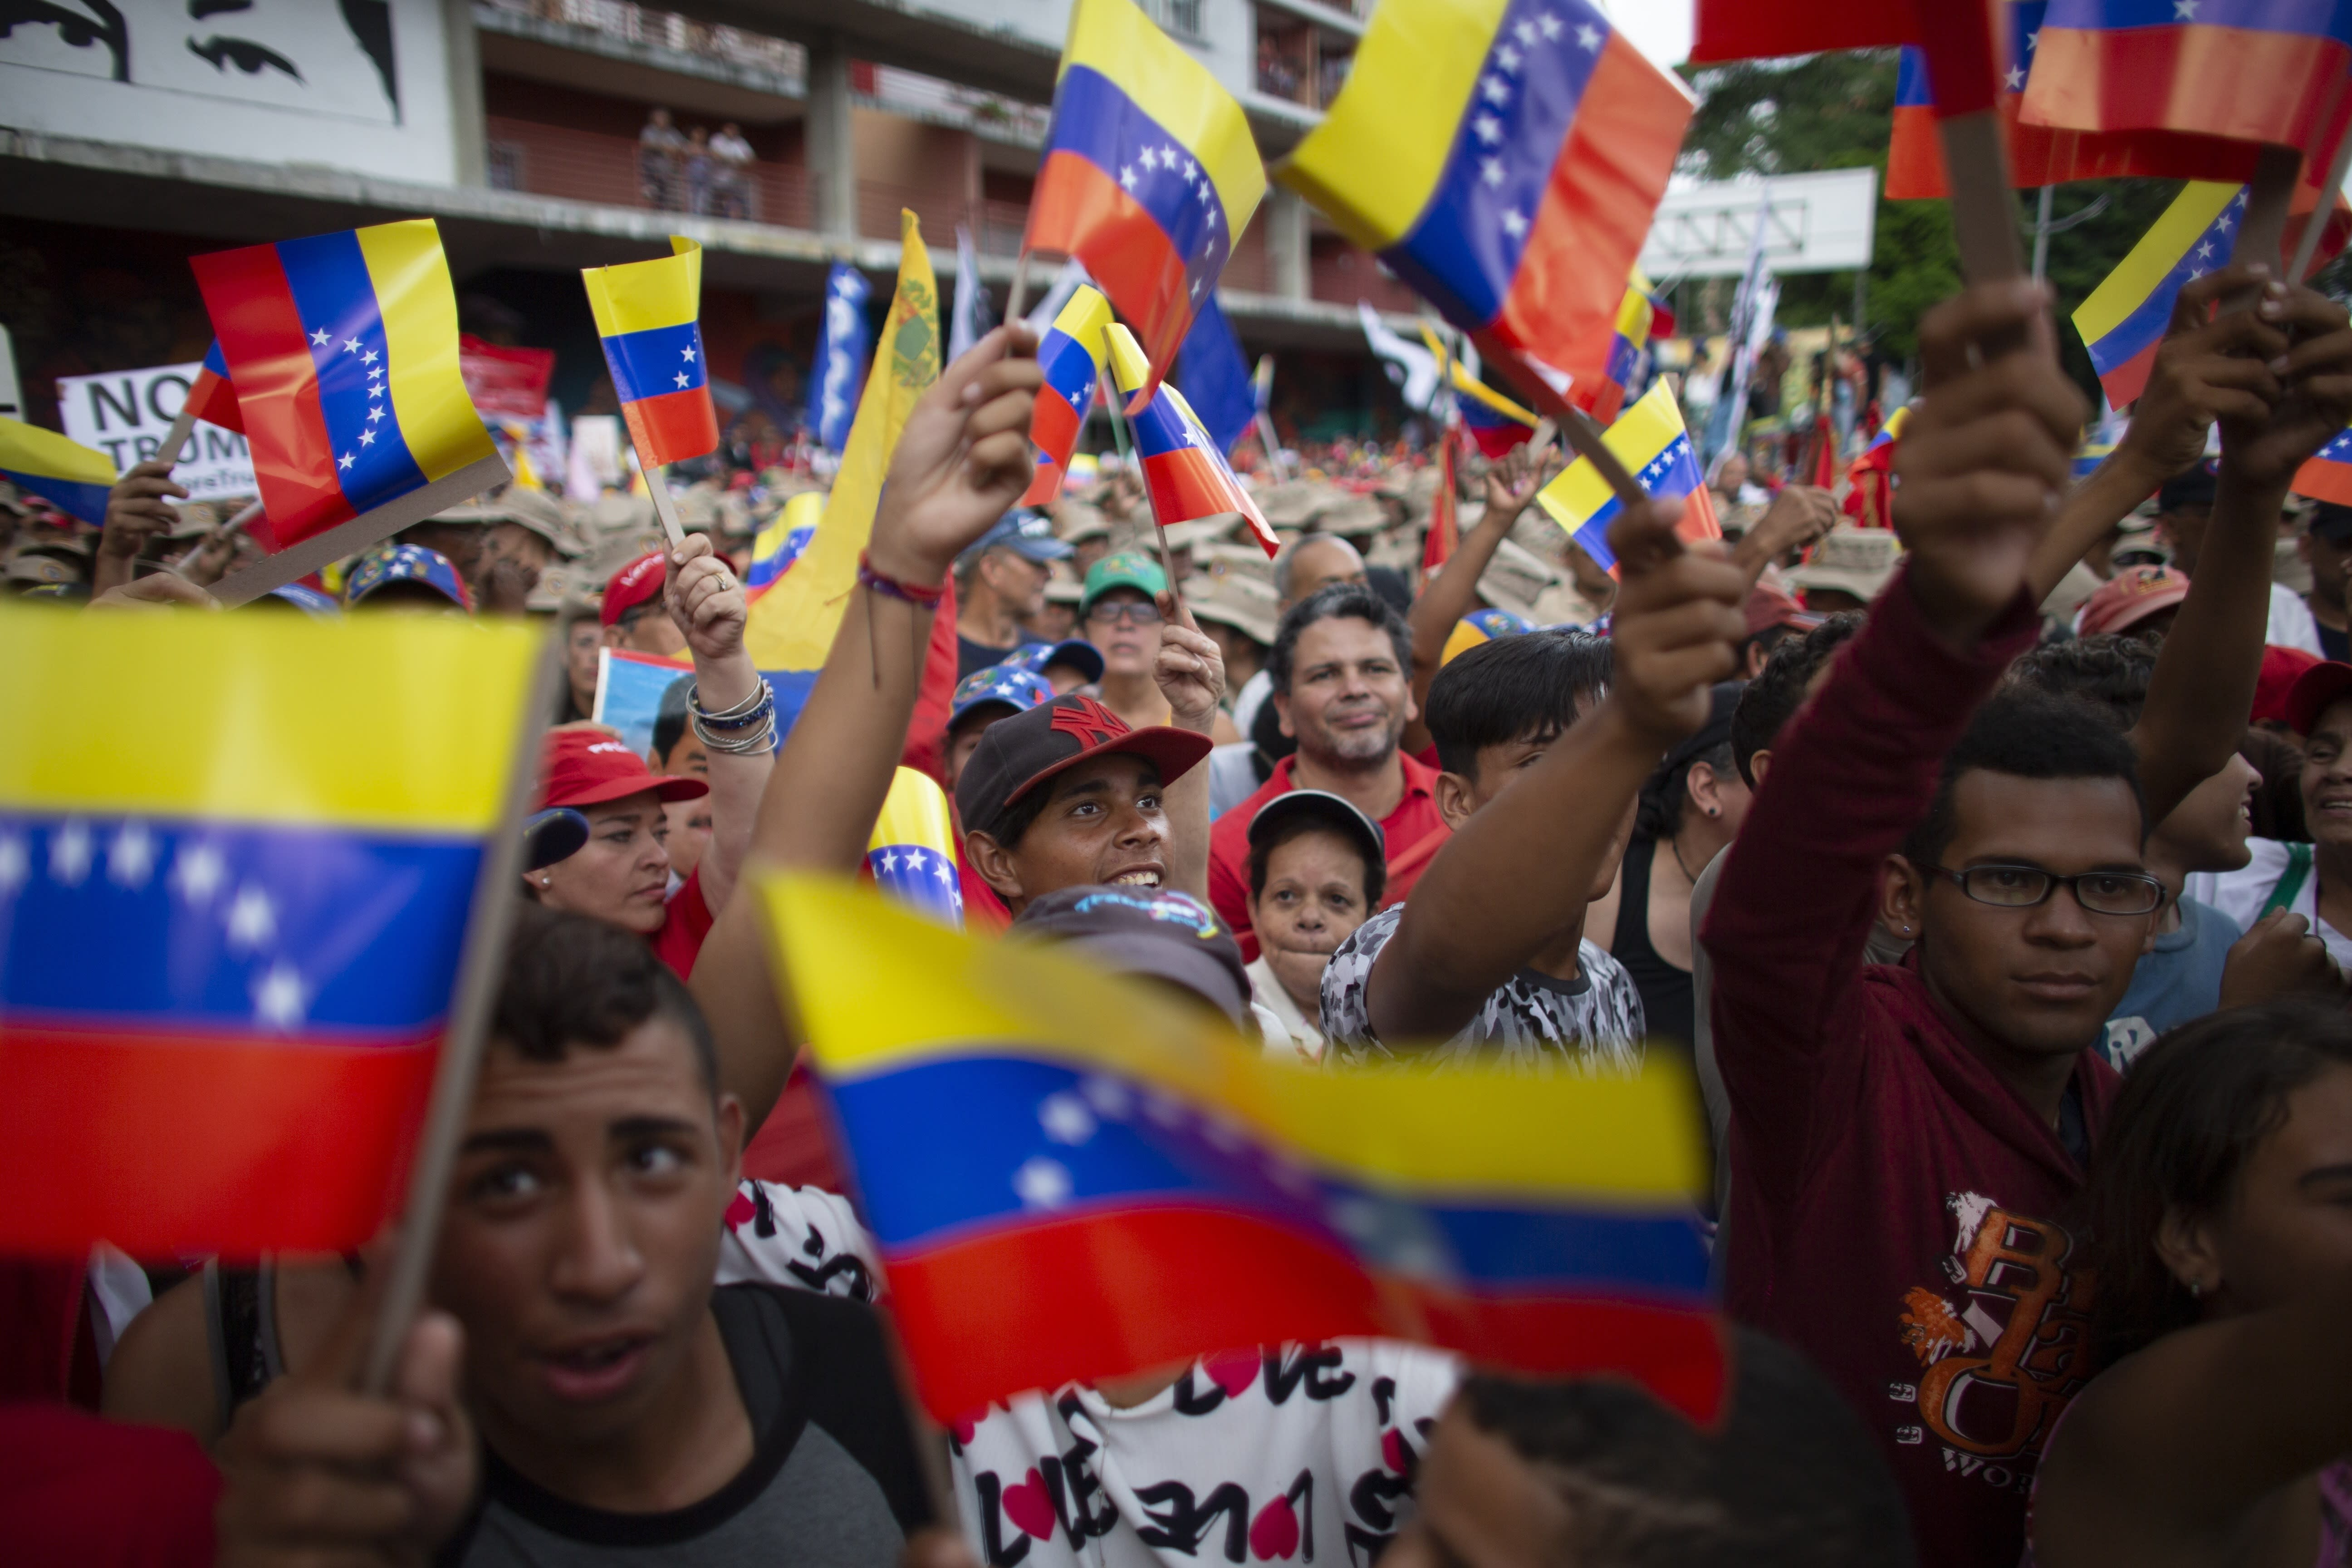 Supporters of President Nicolas Maduro wave Venezuelan flags during an anti-imperialist rally in Caracas, Venezuela, Saturday, August 31, 2019. Venezuelan officials say they have proof of paramilitary training camps operating in neighboring Colombia where groups are purportedly plotting attacks to undermine President Nicolás Maduro. (AP Photo/Ariana Cubillos)